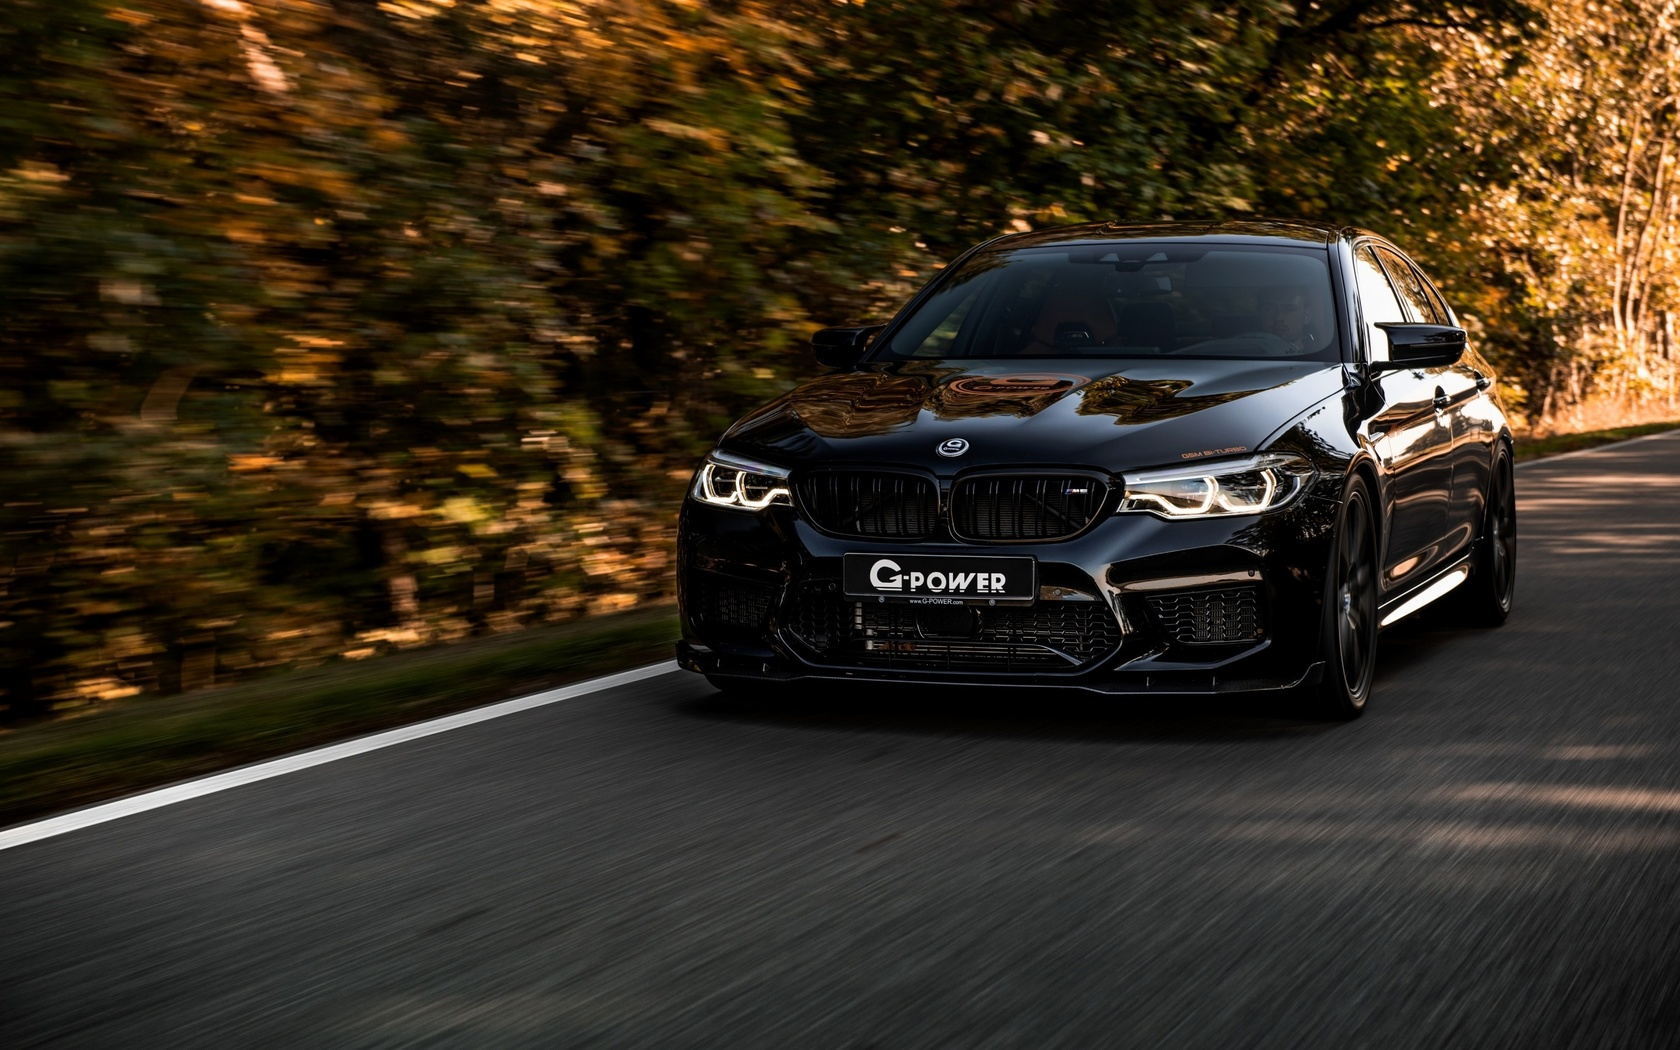 bmw, m5, g-power, f90, tuning, black, sedan